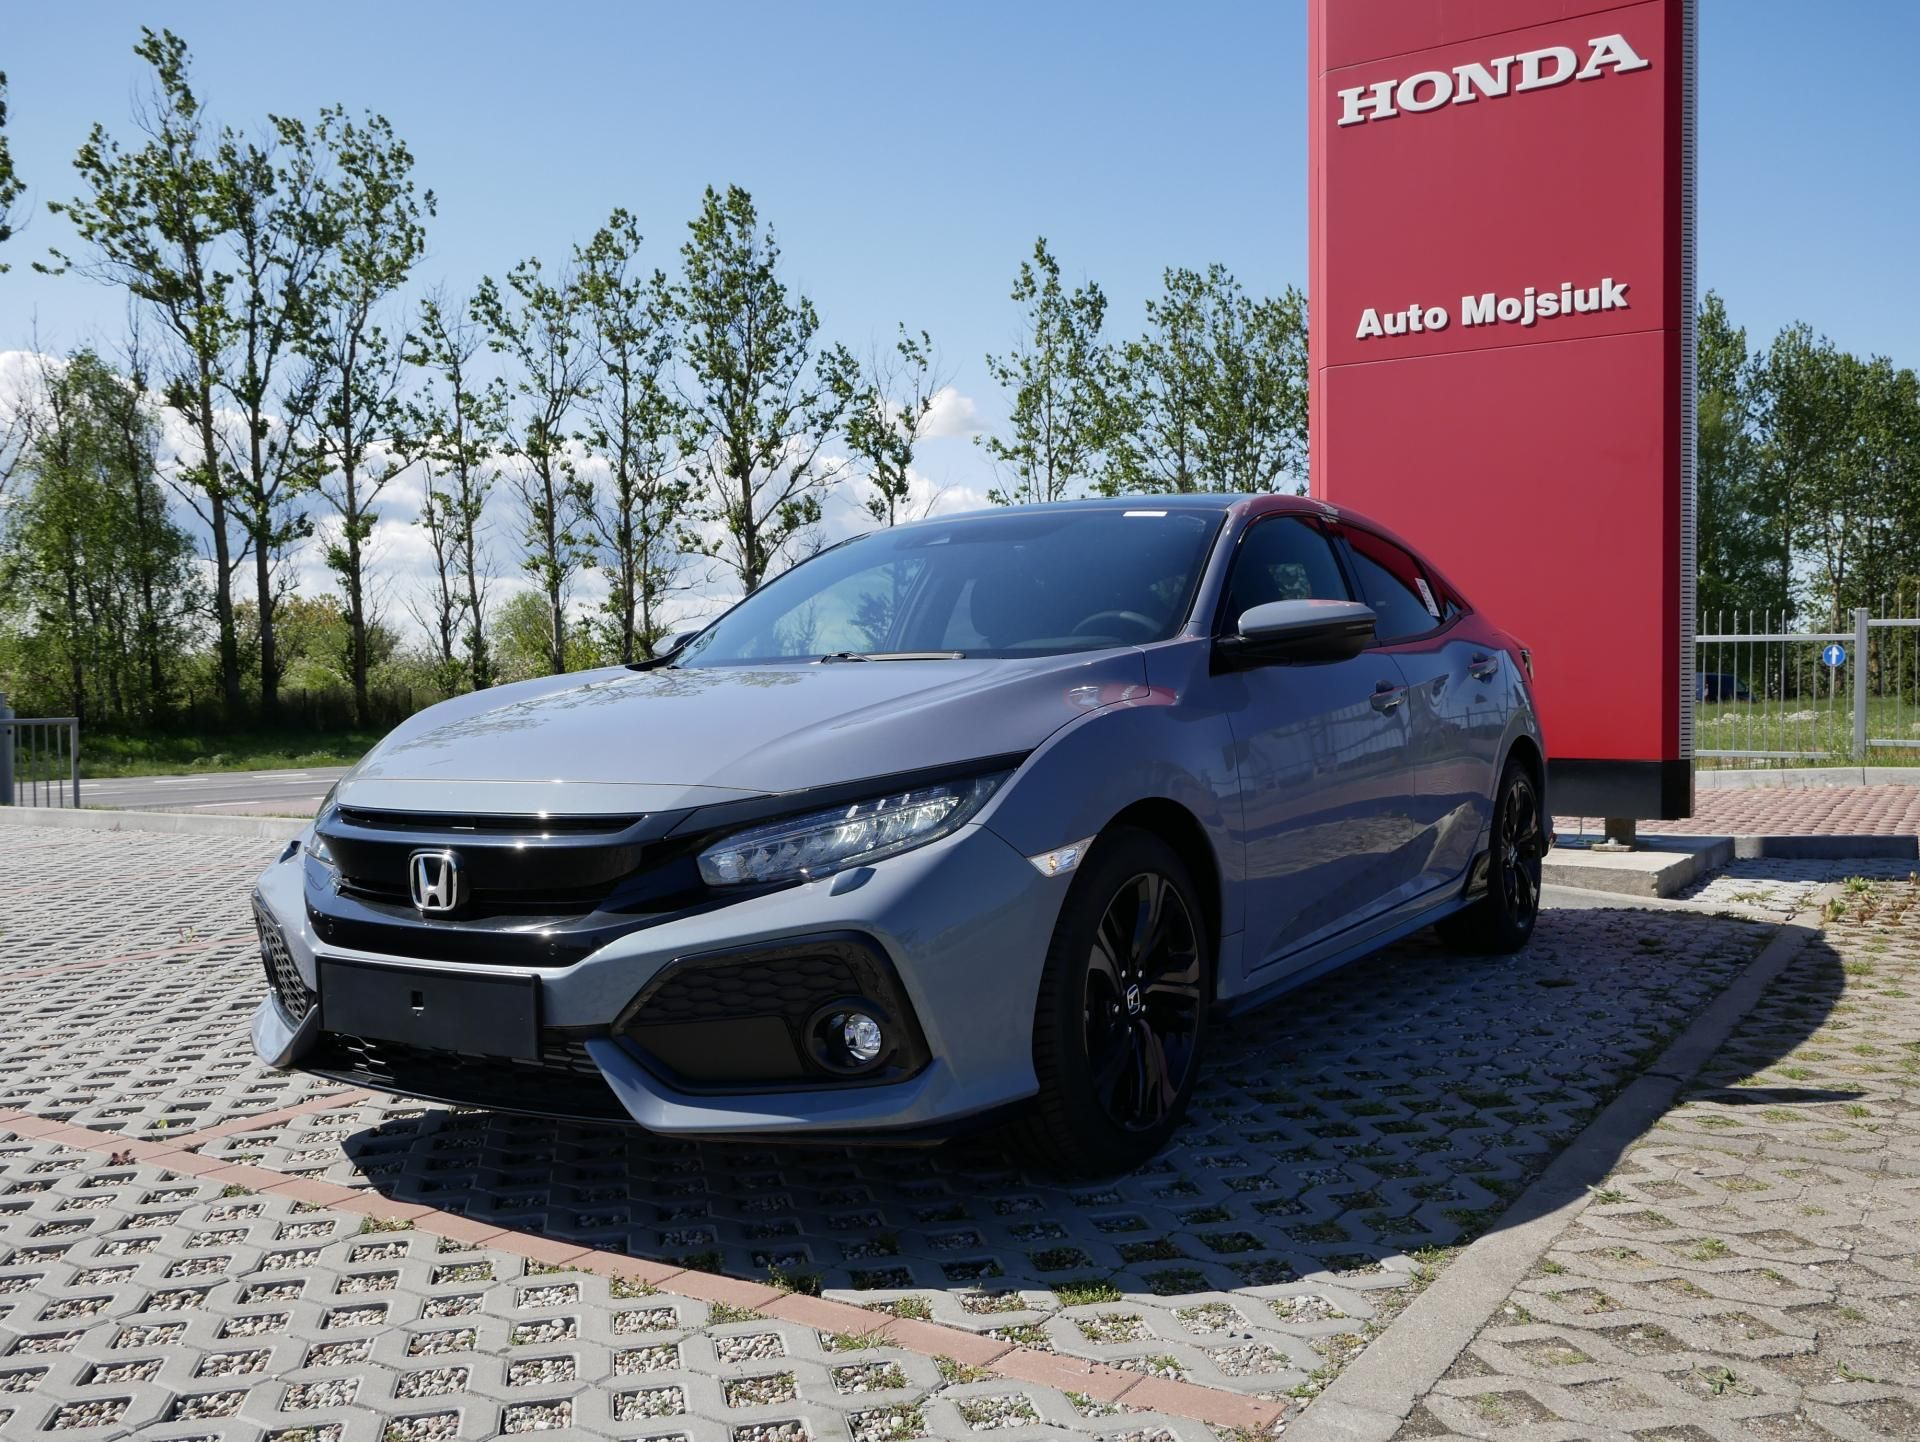 Honda Civic 1.5 VTEC TURBO Sport Plus CVT 2019 RABAT